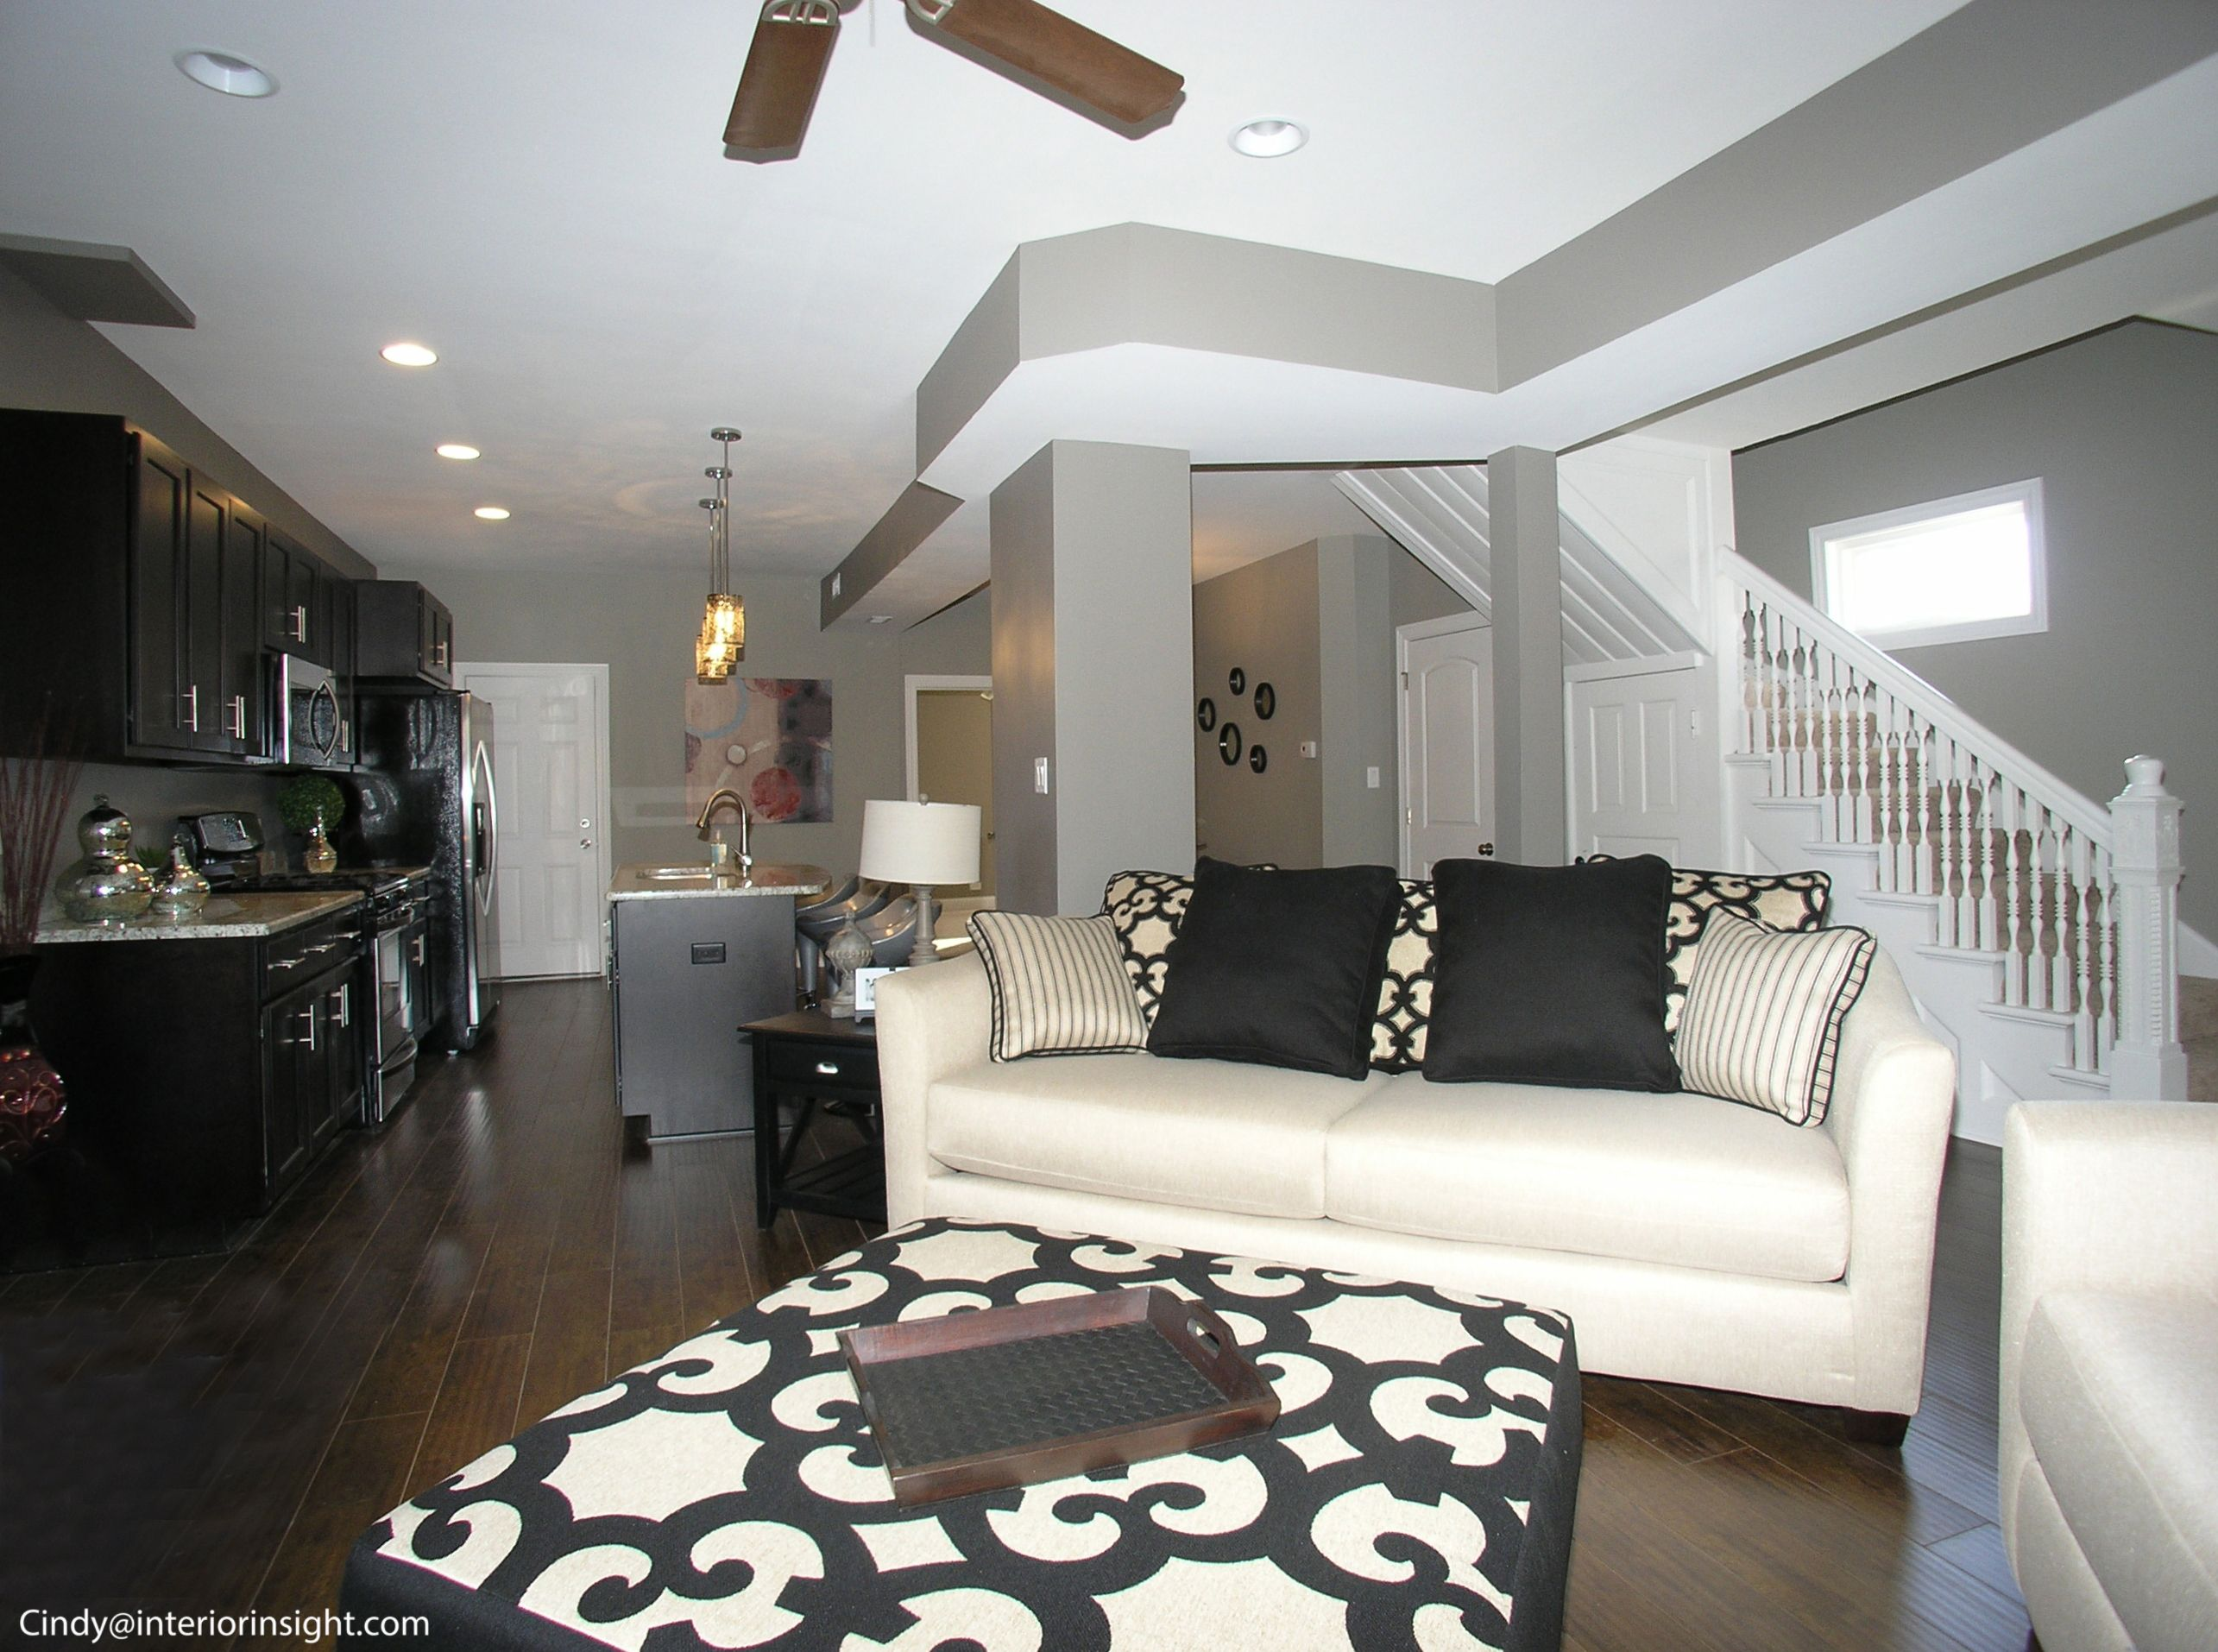 Staged Open Floor Plan In This New Renovated Chicago Bungalow Listed By George Slowinski Illinois Love The Over Sized Black And White Ottoman